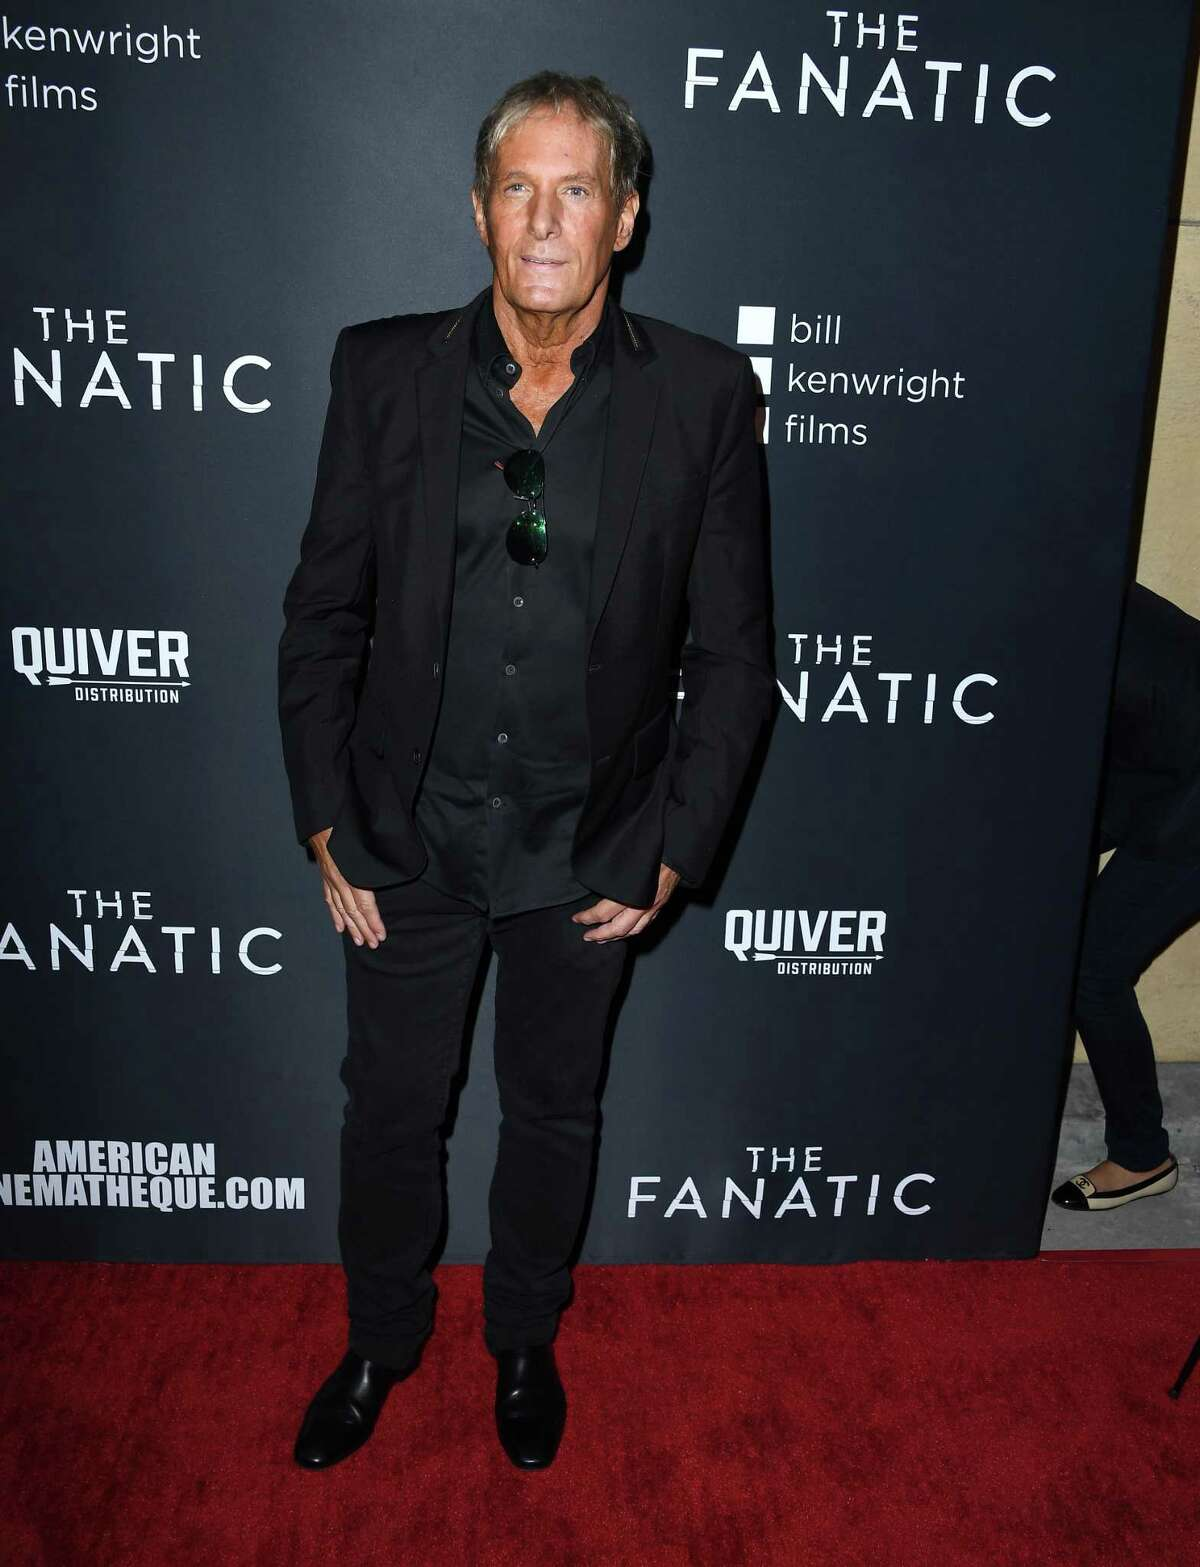 HOLLYWOOD, CALIFORNIA - AUGUST 22: Michael Bolton arrives at the Premiere Of Quiver Distribution's